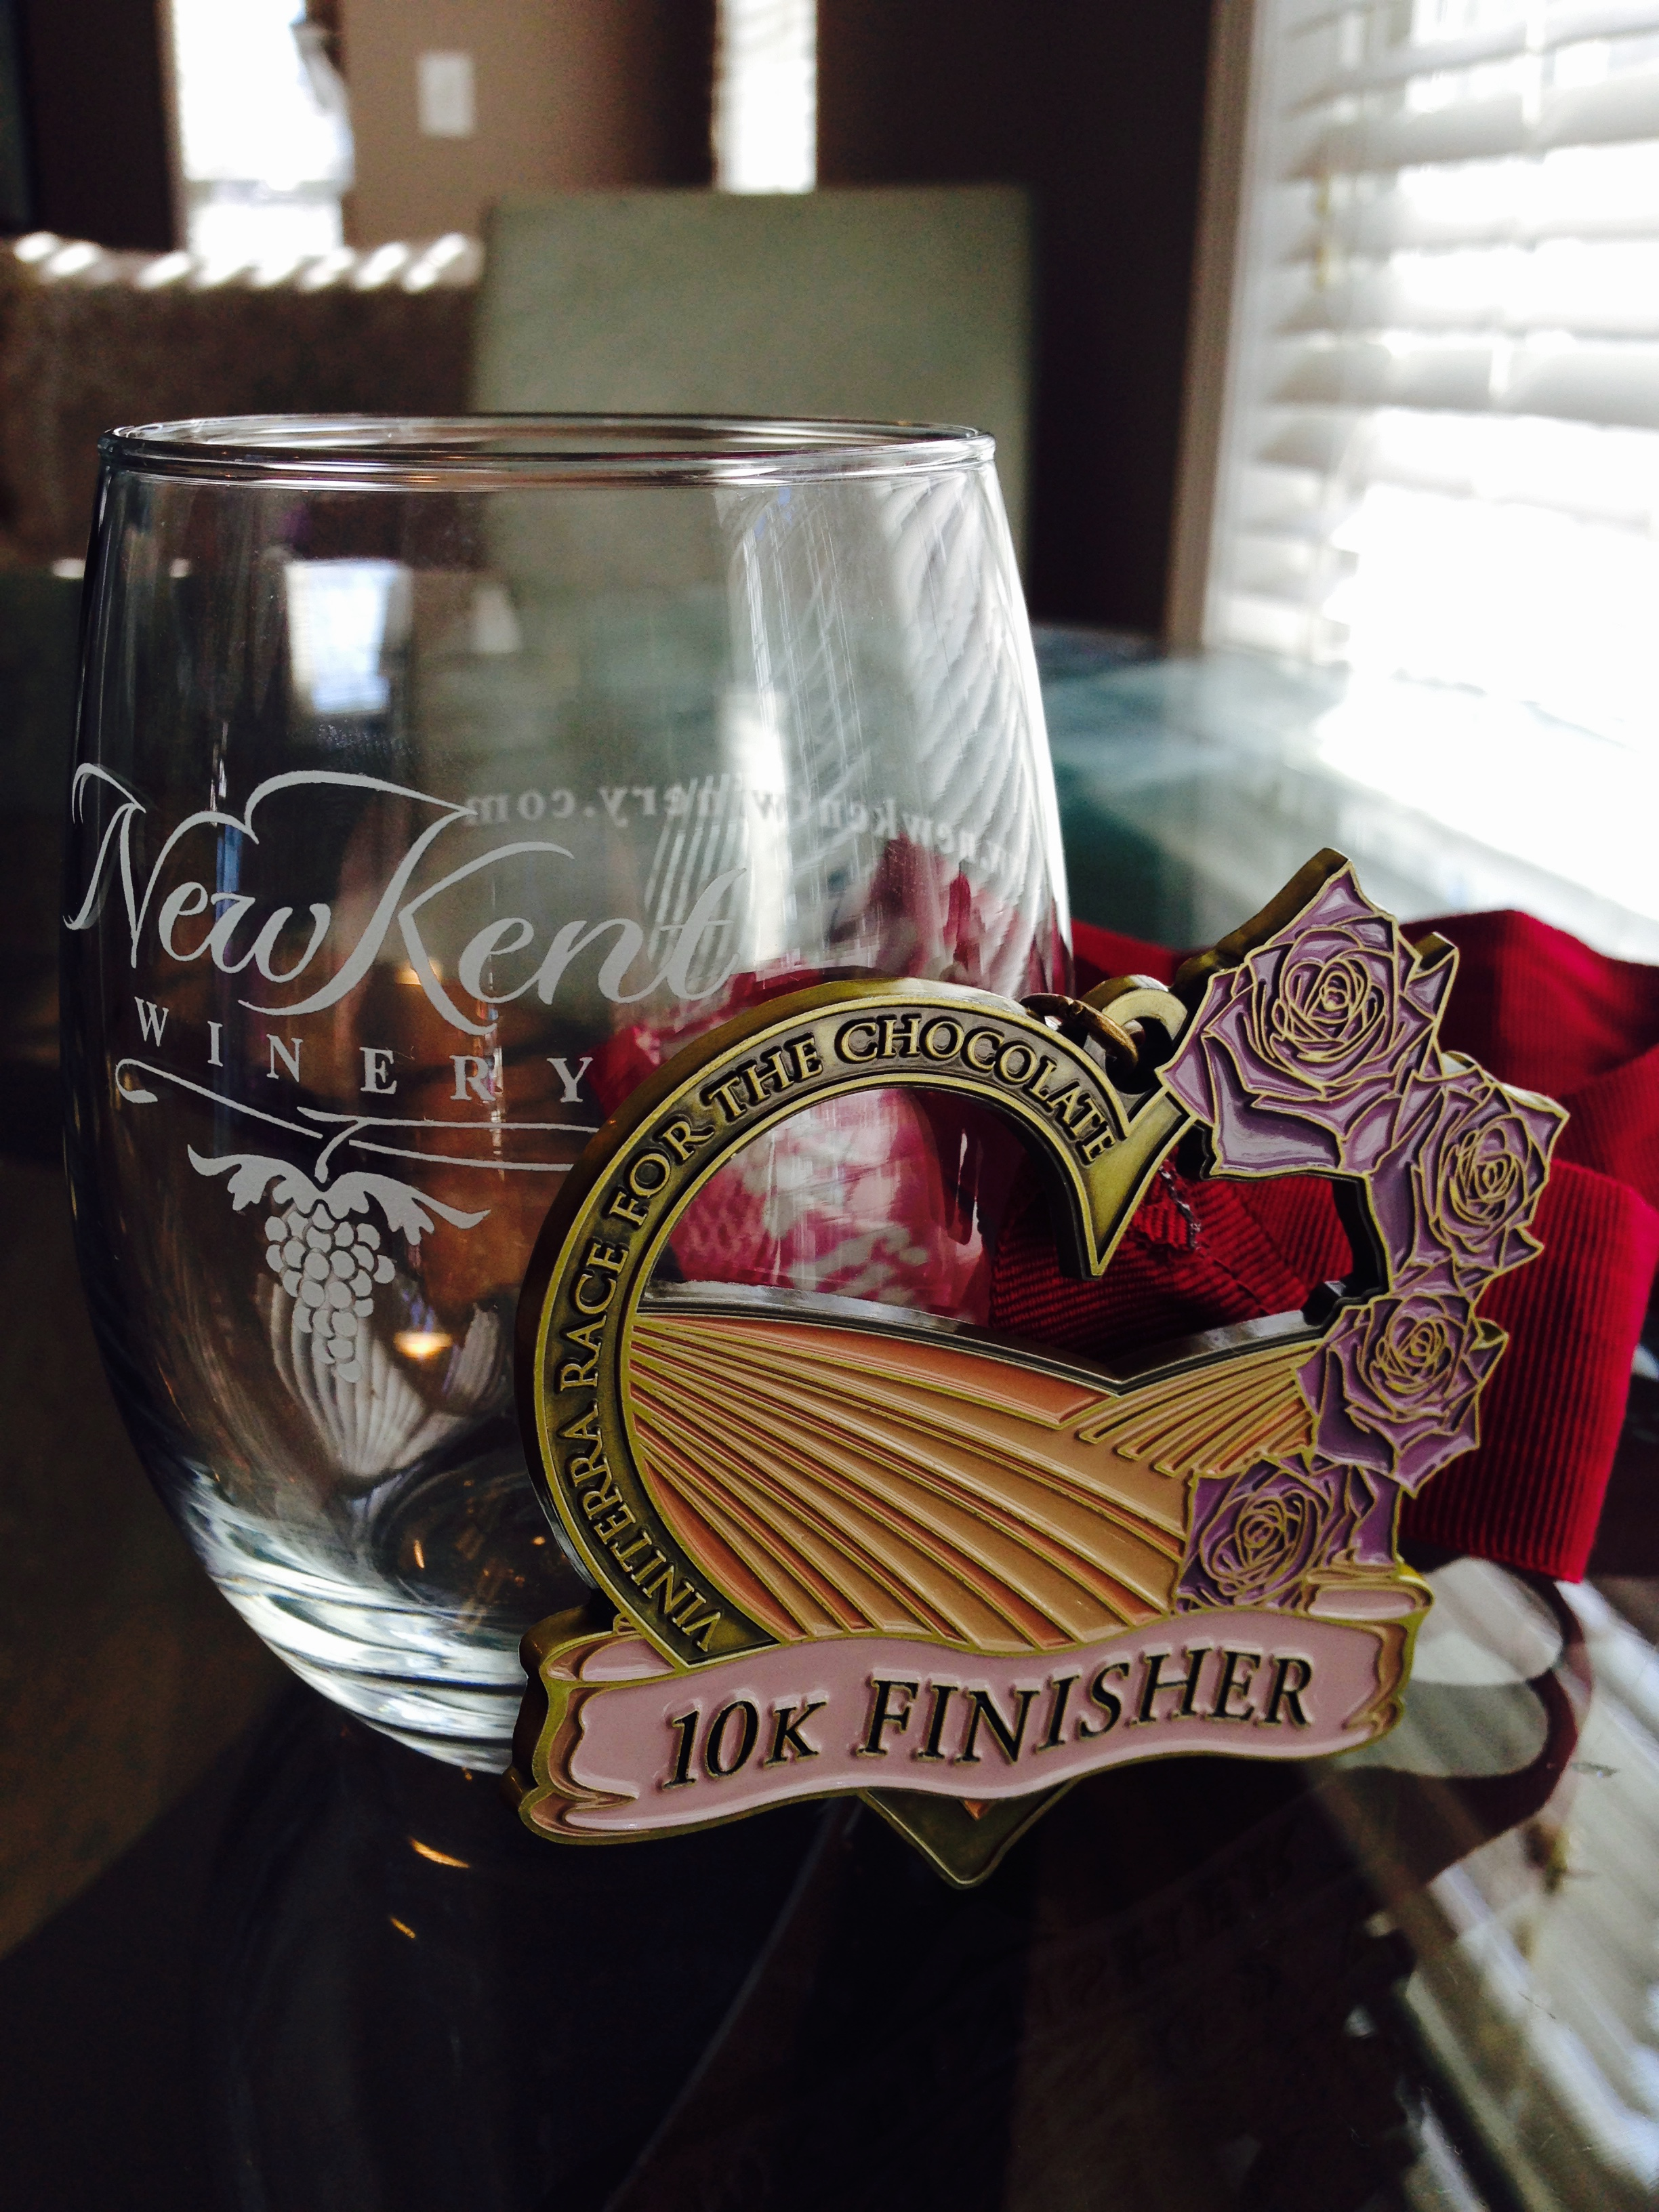 Race for the Chocolate 10K - medal and wine glass